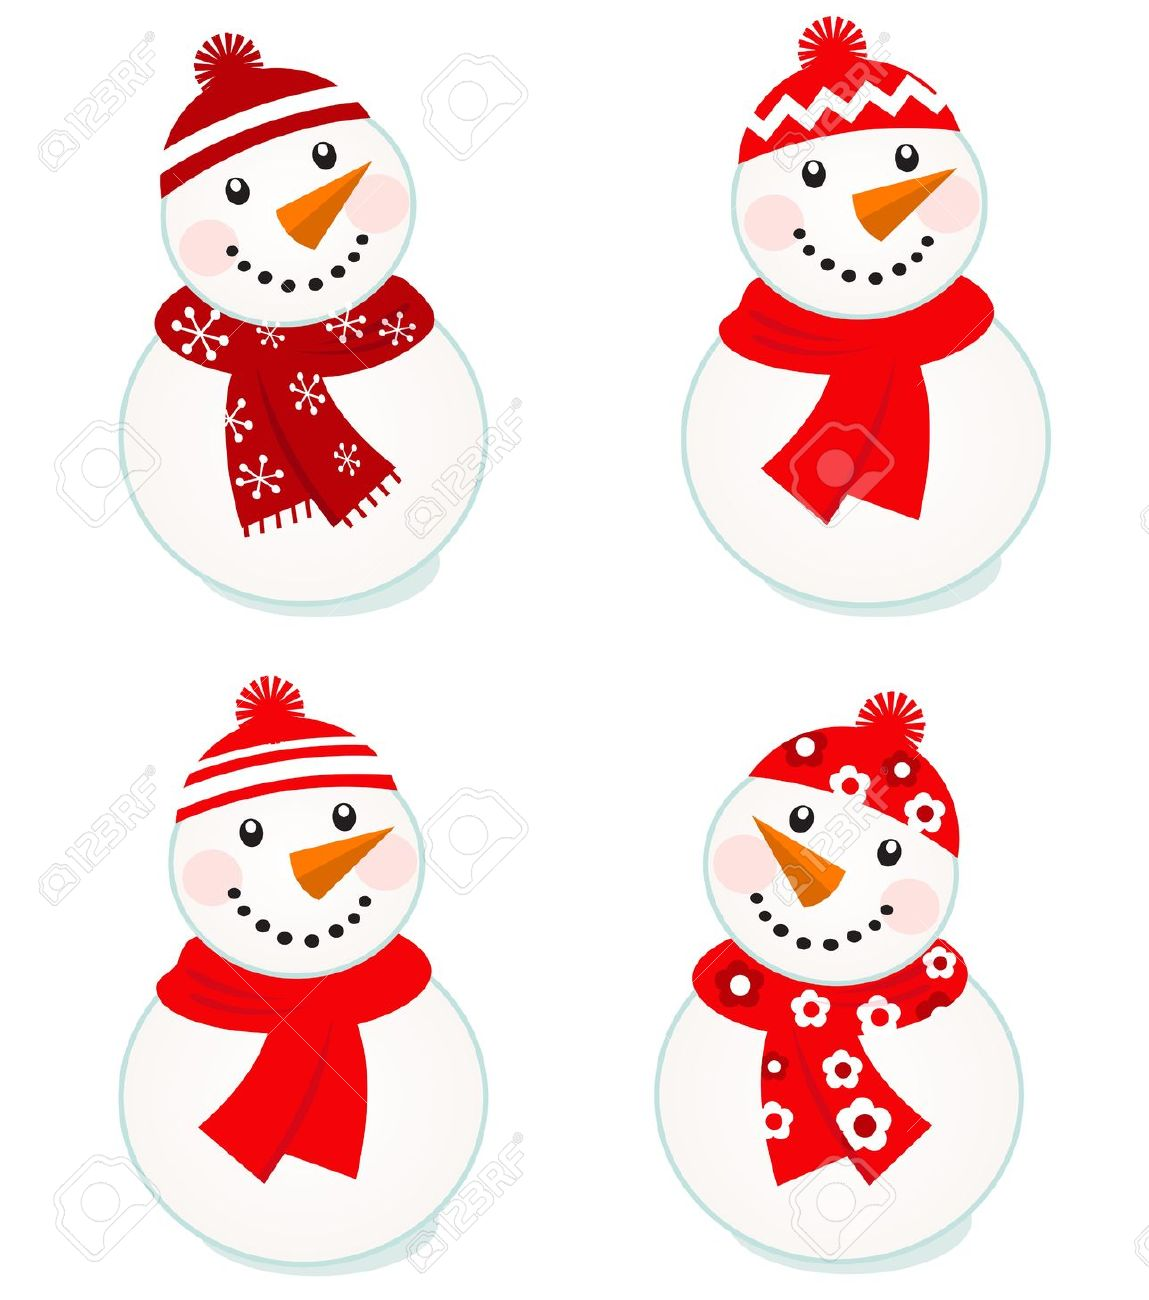 Free frosty snowman clipart.